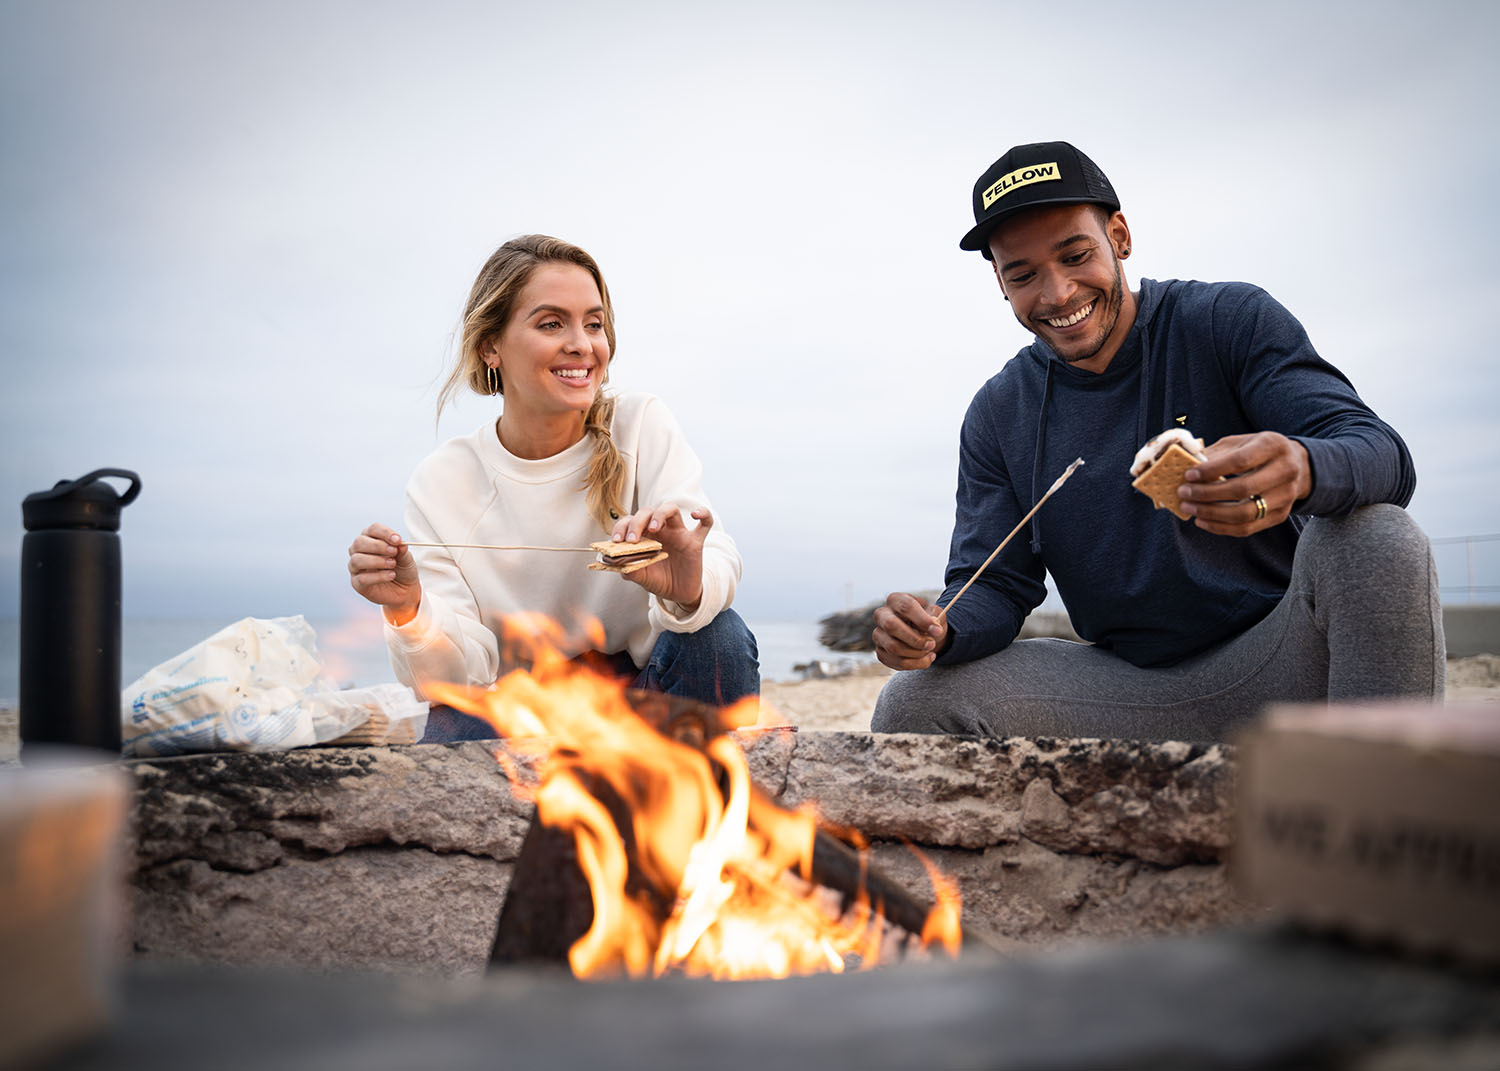 Lifestyle-On-Location-Model-Onmodel-Damion-Lloyd-Photography-Commercial-Product-Apparel-Clothing-Los-Angeles-Orange-County-female-male-The-Yellow-Life-fire-pit-smores-beach-sunset